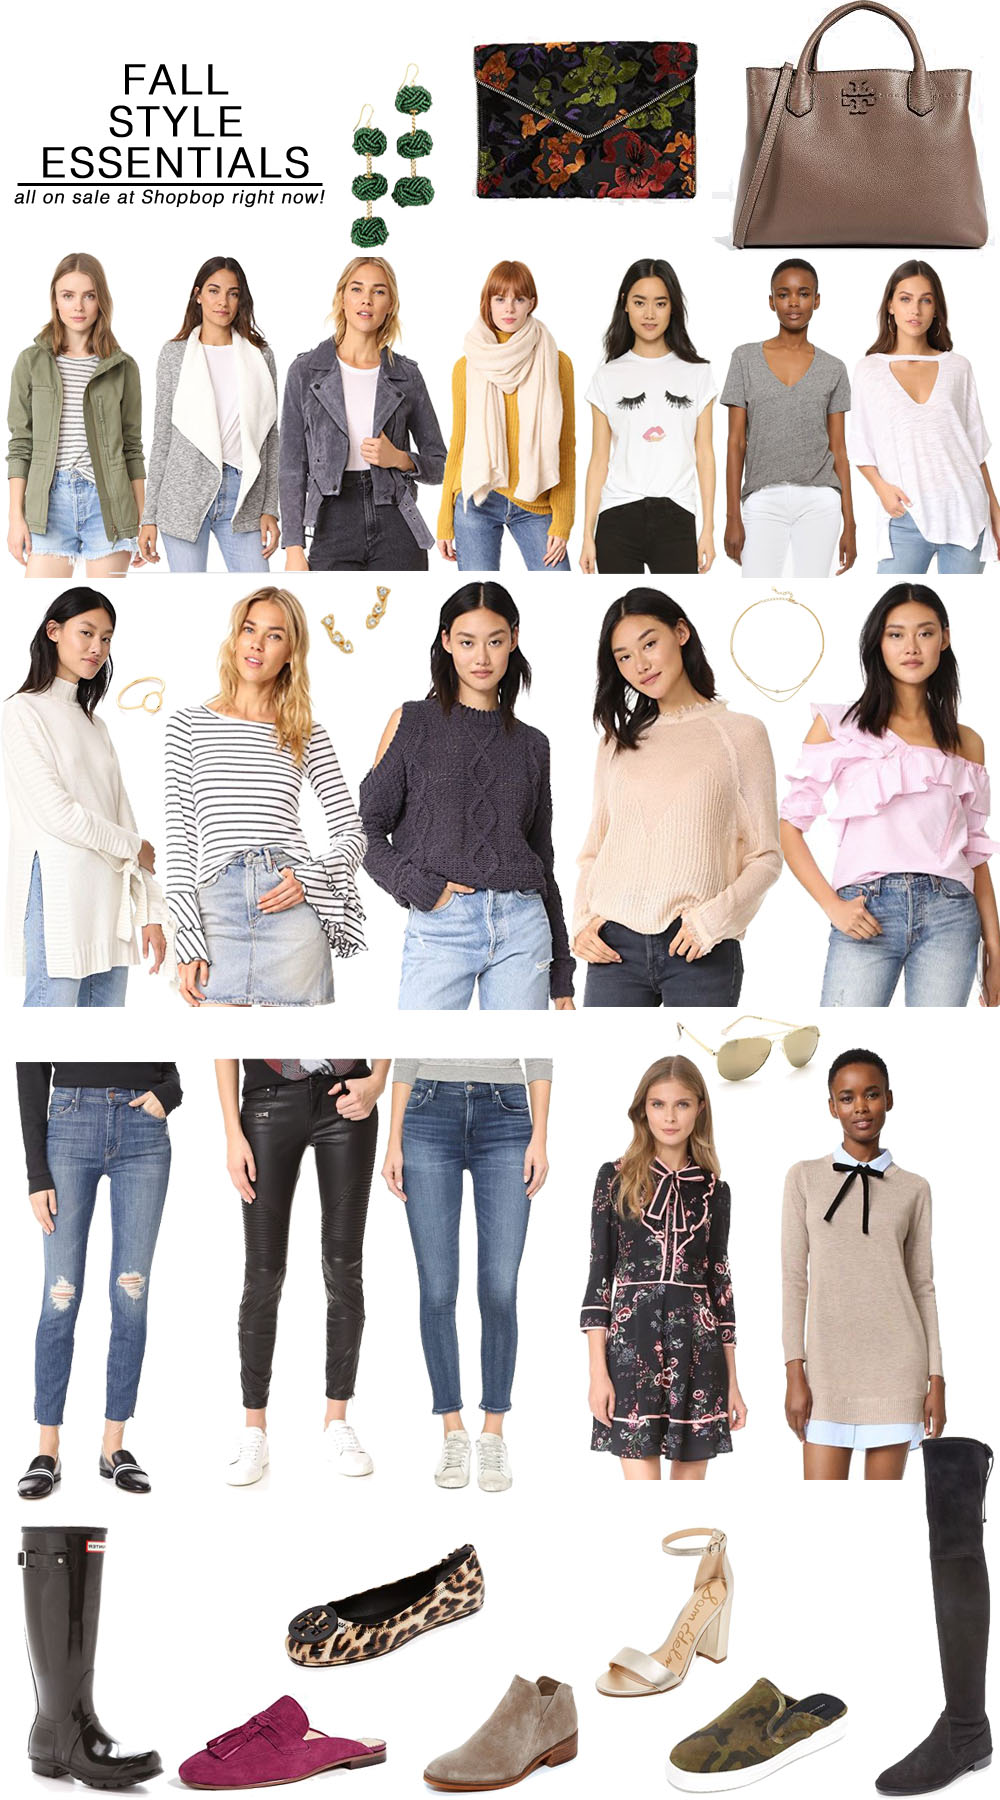 Best Fall Style Essentials from Shopbop // the modern savvy, a life & style blog - Fall Style Essentials by popular Florida style blogger The Modern Savvy